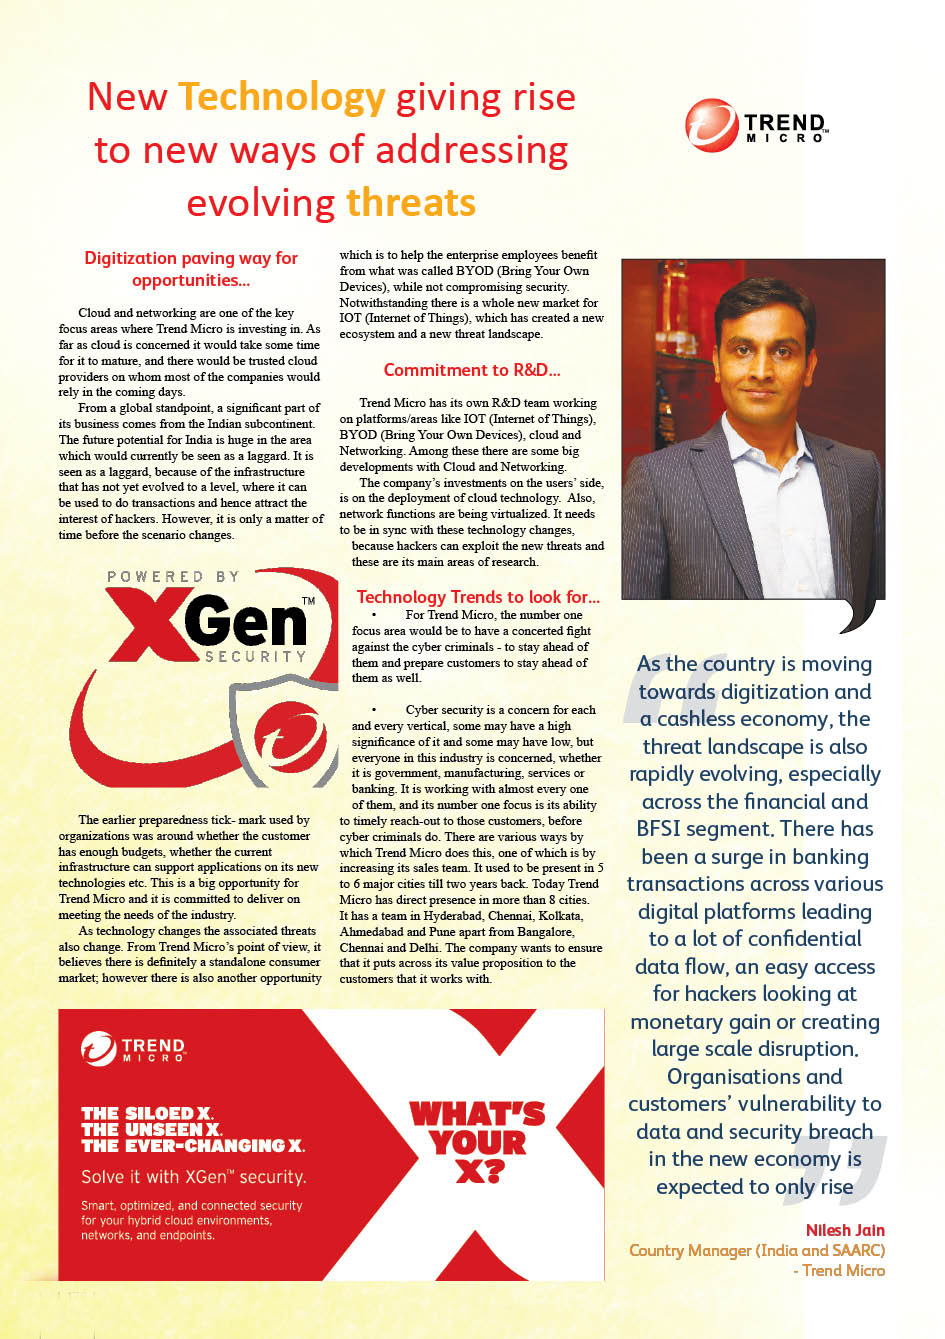 Trend Micro: New Technology giving rise to new ways of addressing evolving threats